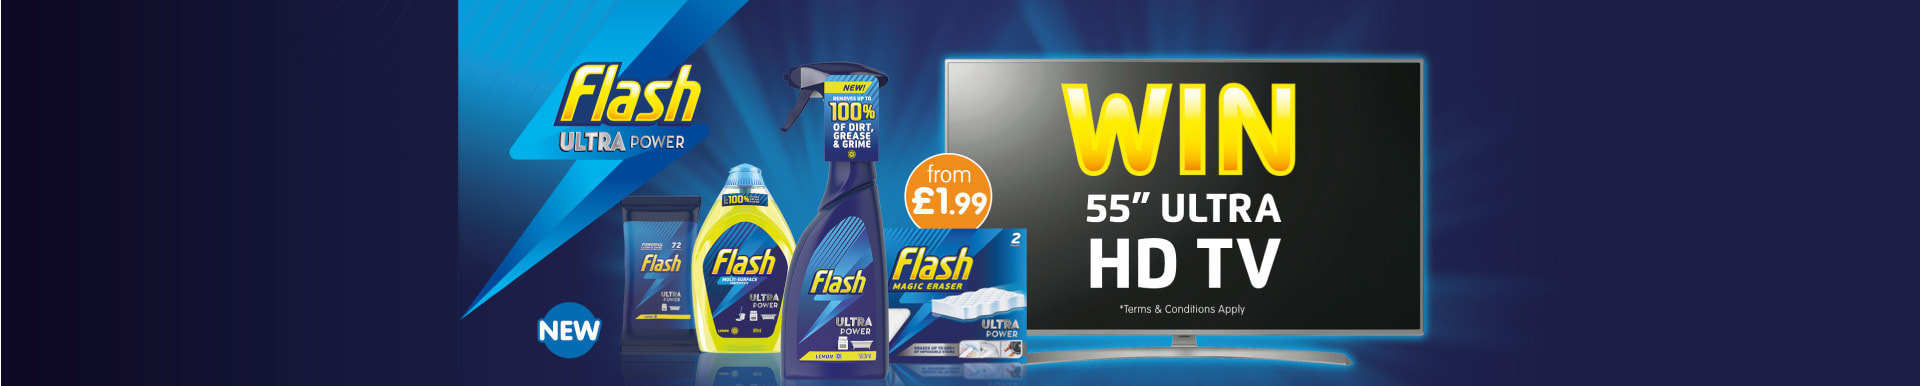 Win with Flash Ultra Power at B&M.